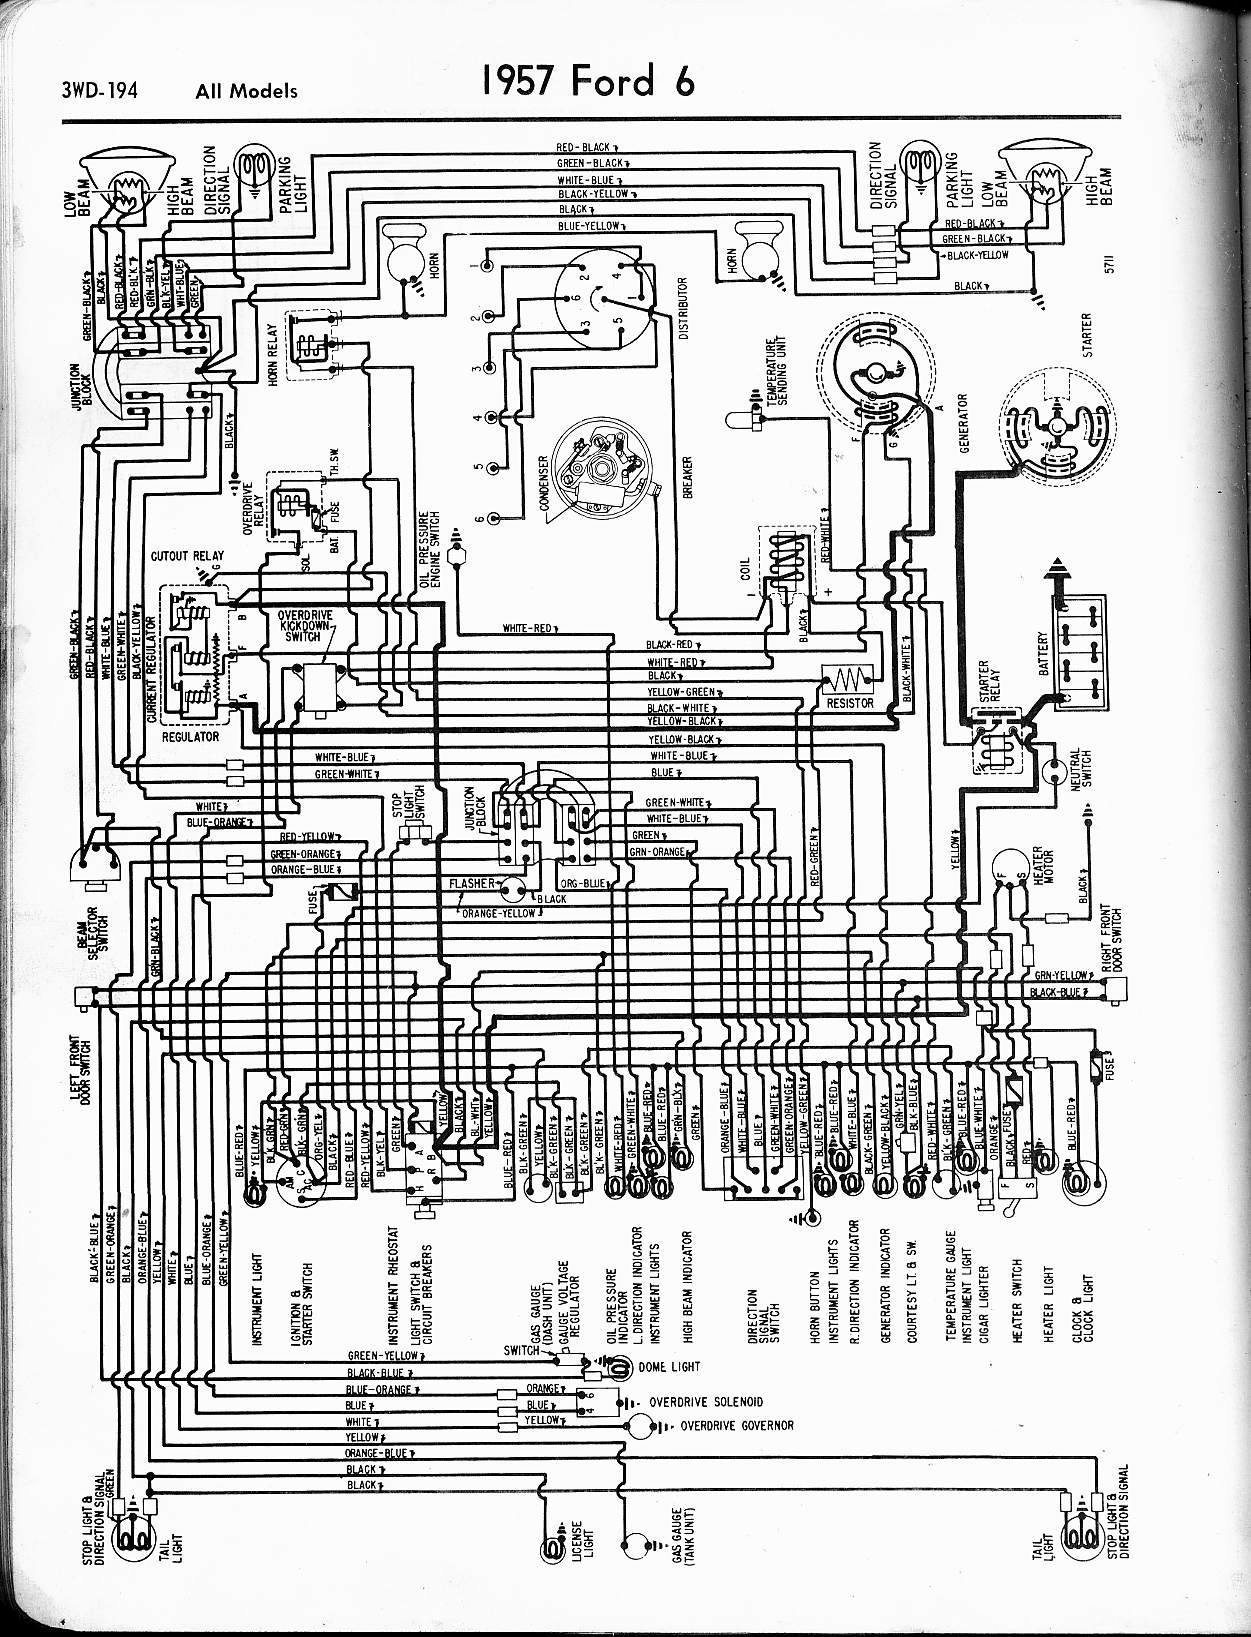 57_ford_wiring ford diagrams 2006 ford f250 wiring schematic at gsmx.co